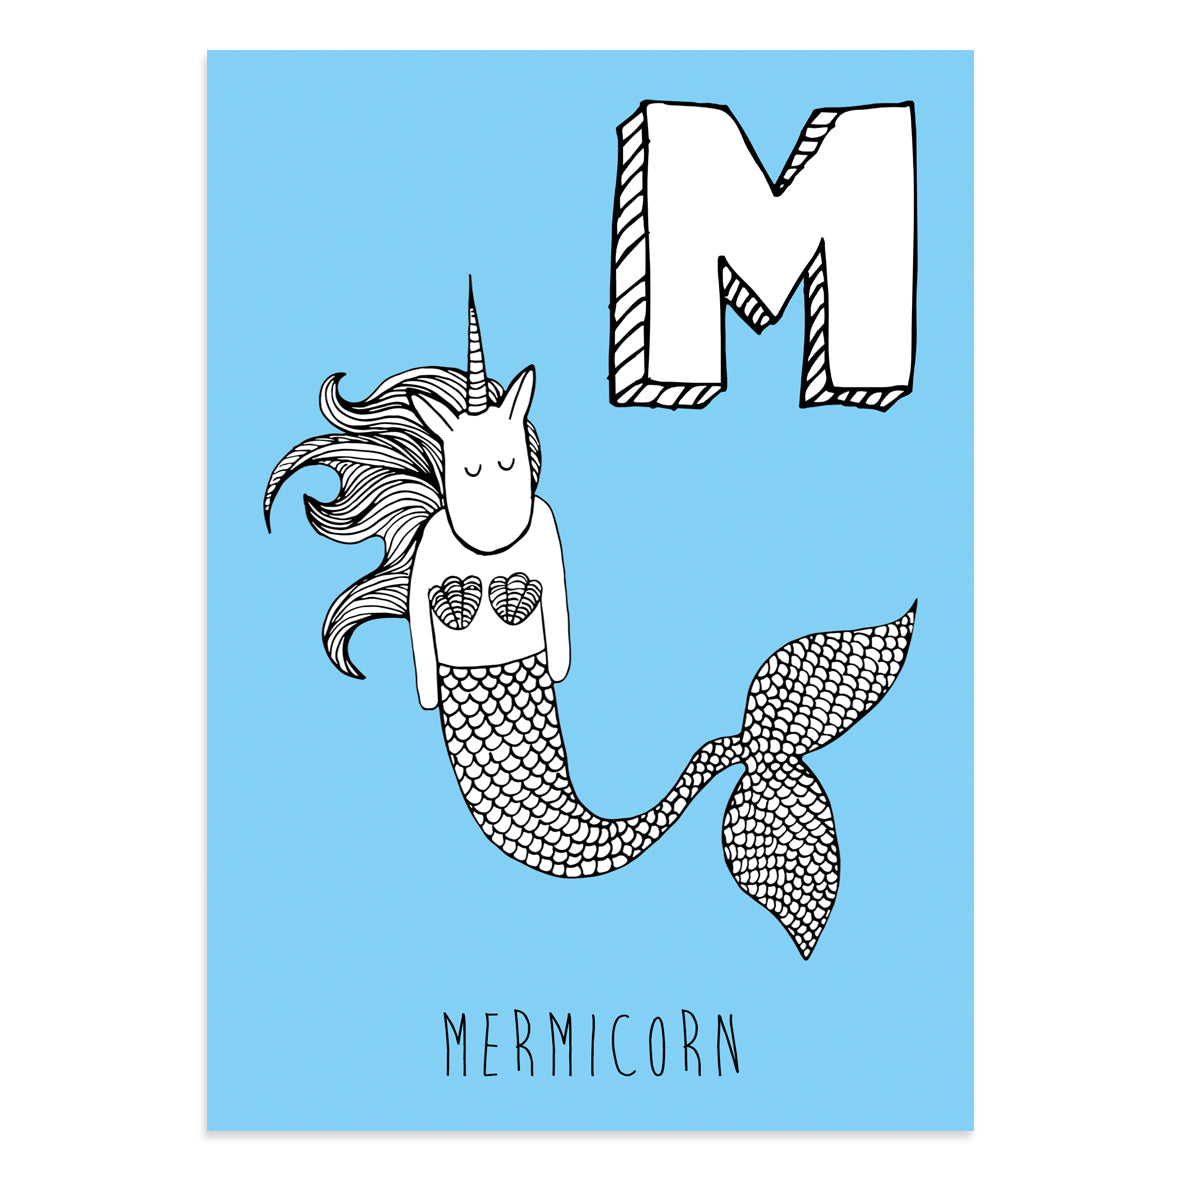 Unicorn postcard featuring M for Mermicorn